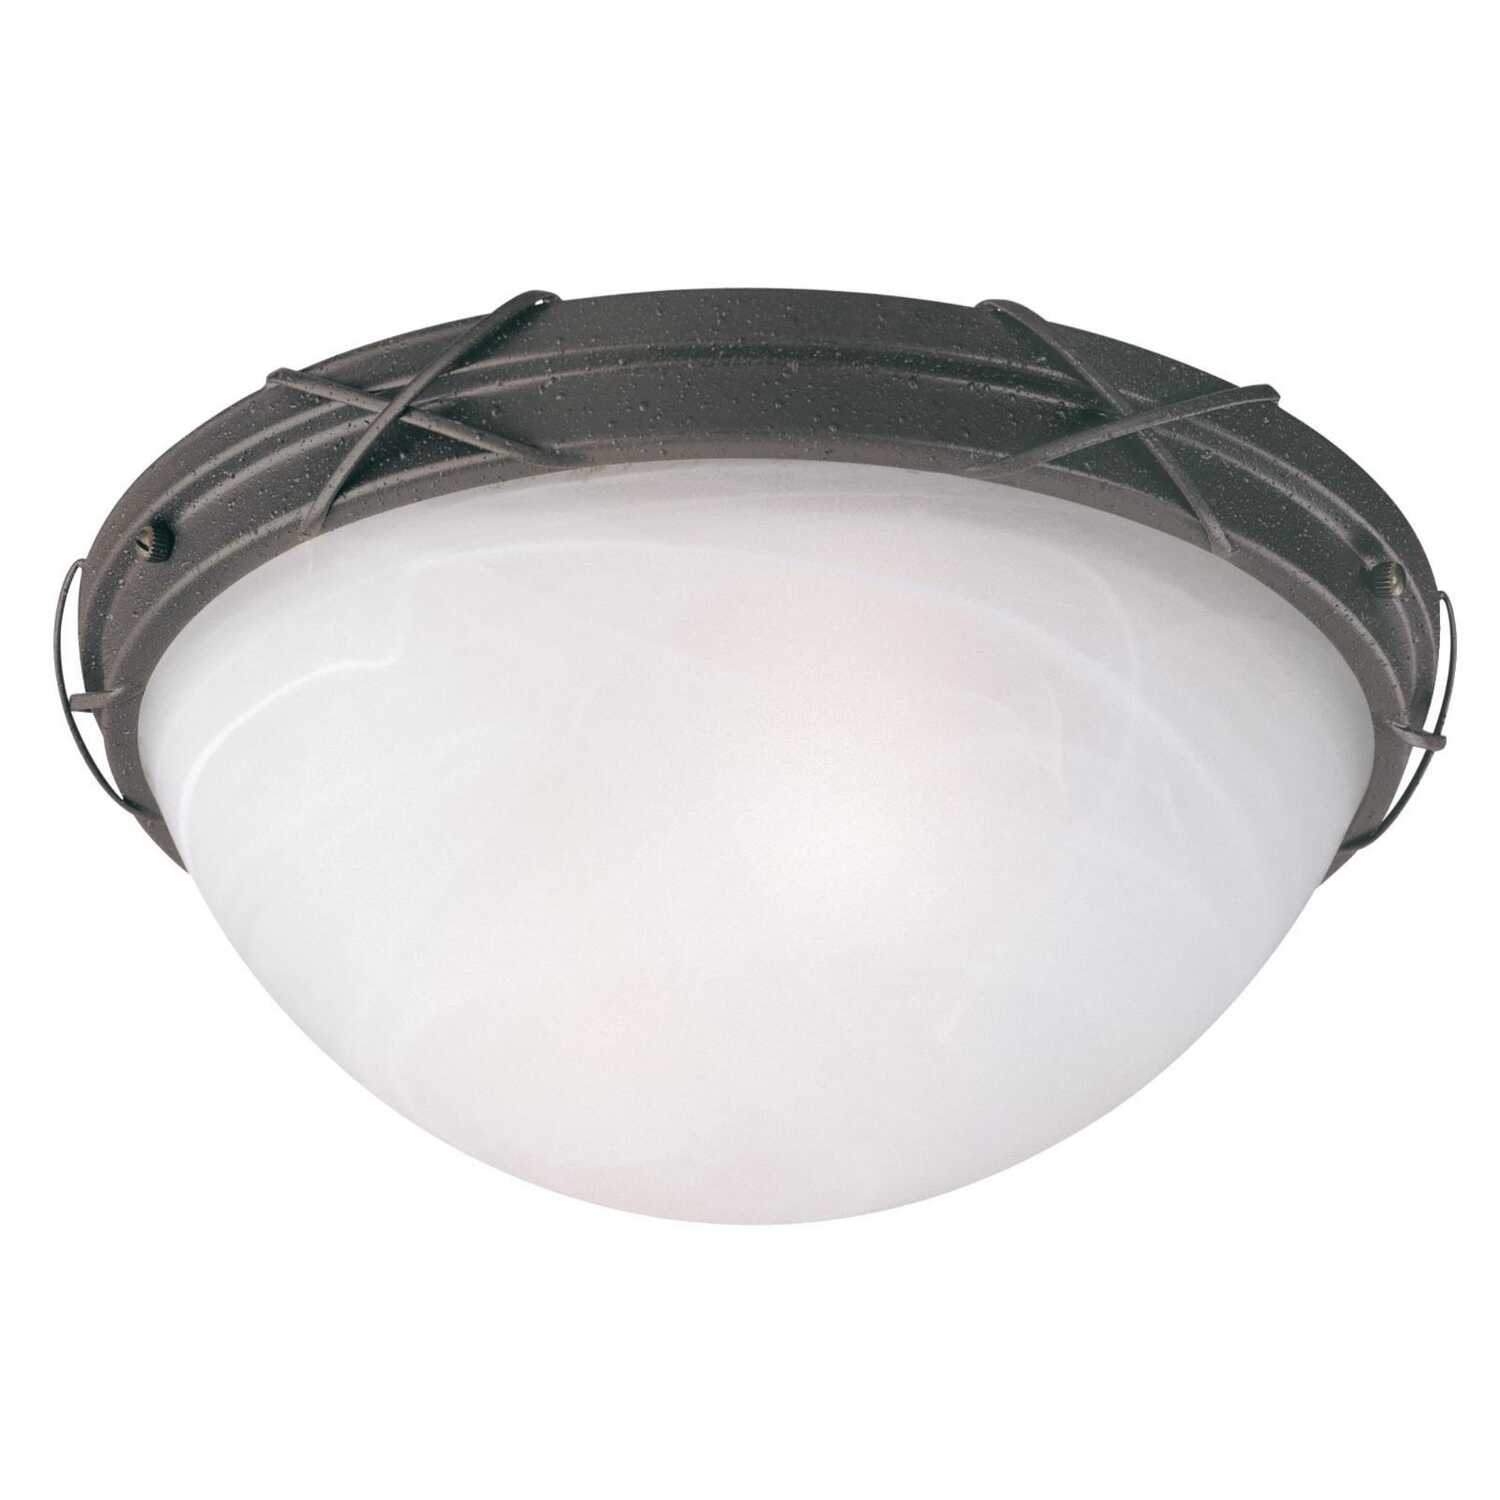 Westinghouse  Claremont  7-1/8 in. H x 14 in. W x 14 in. L Ceiling Light